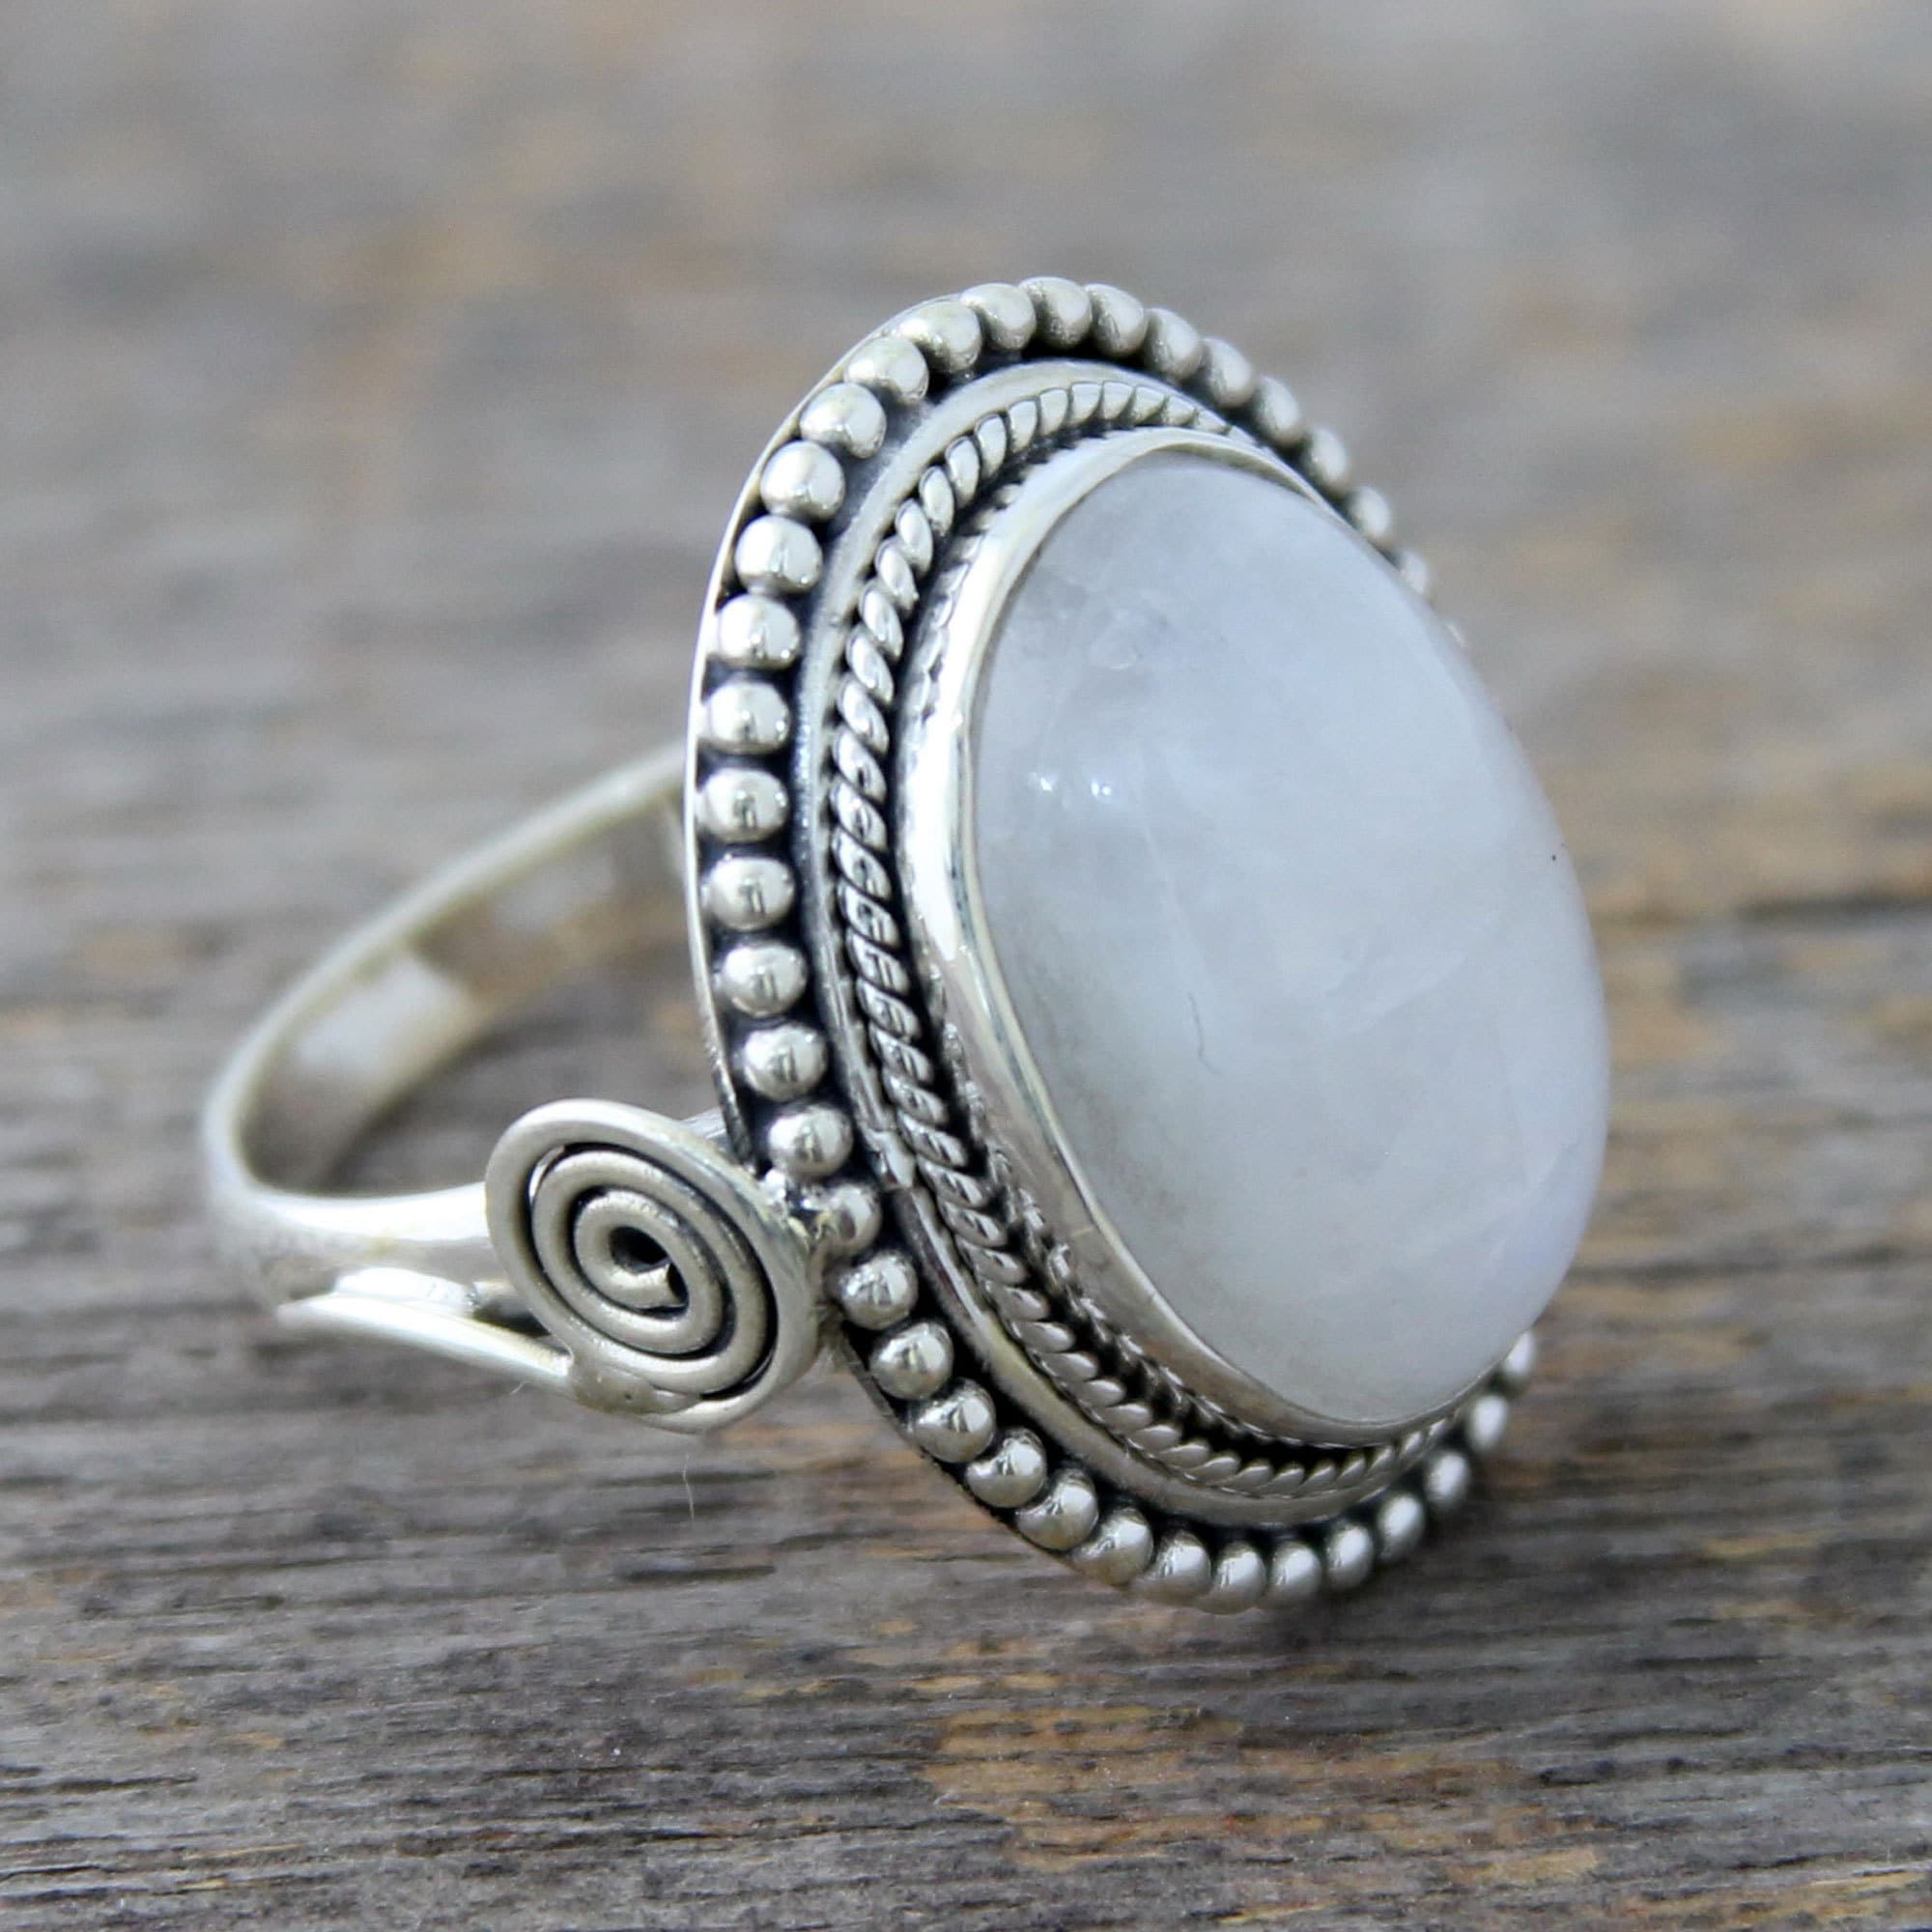 goes chiq royal tictail hedvig moonstone flower hedvigcharlotta rings magic bohemian charlotta ring rainbow kum